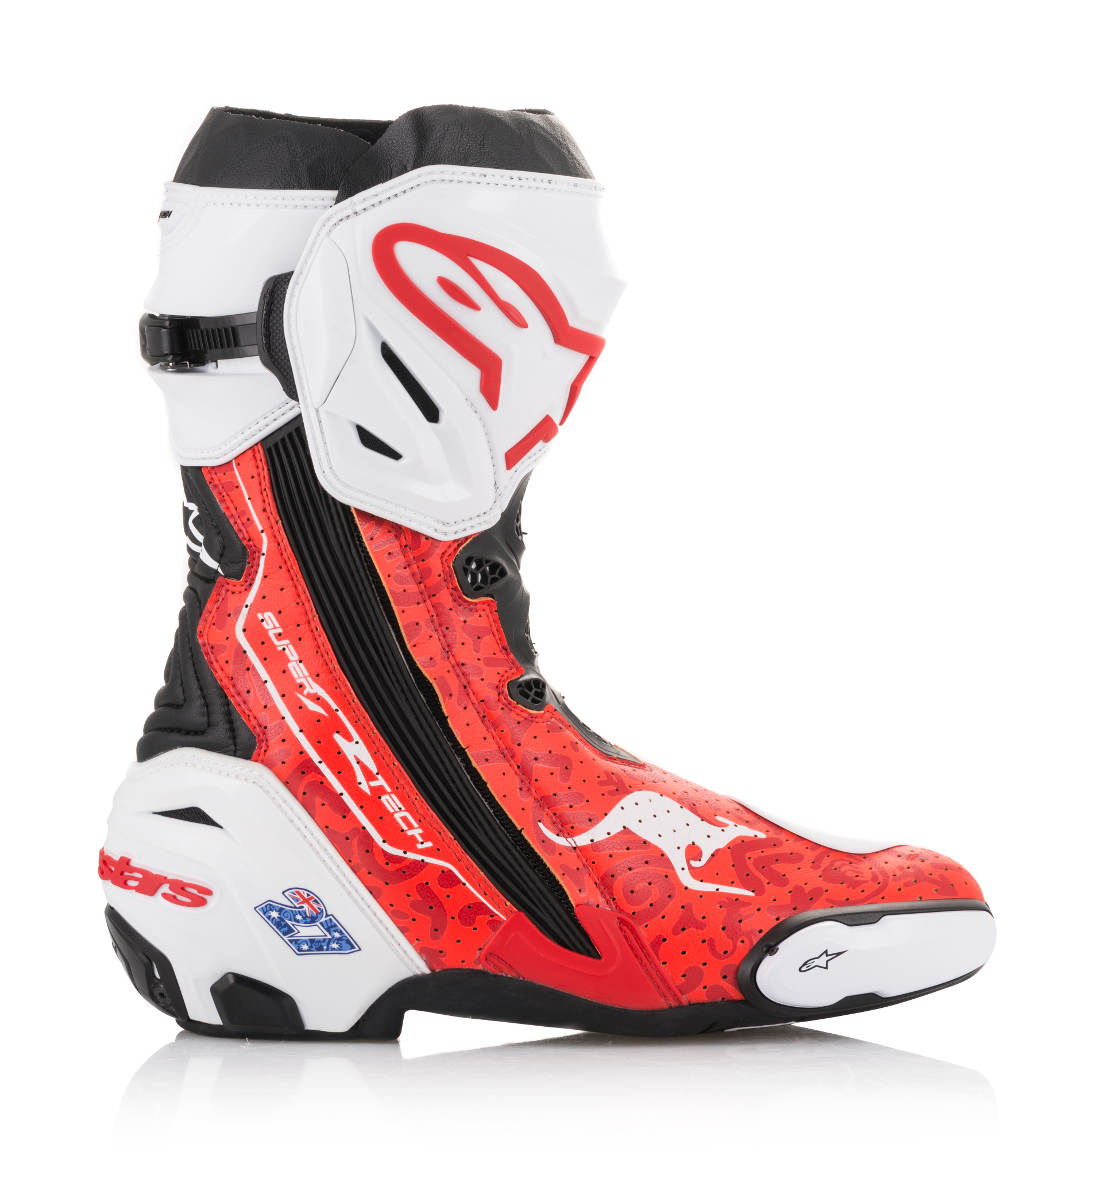 Limited Edition Alpinestars Stoner Supertech R Boots Outer Side